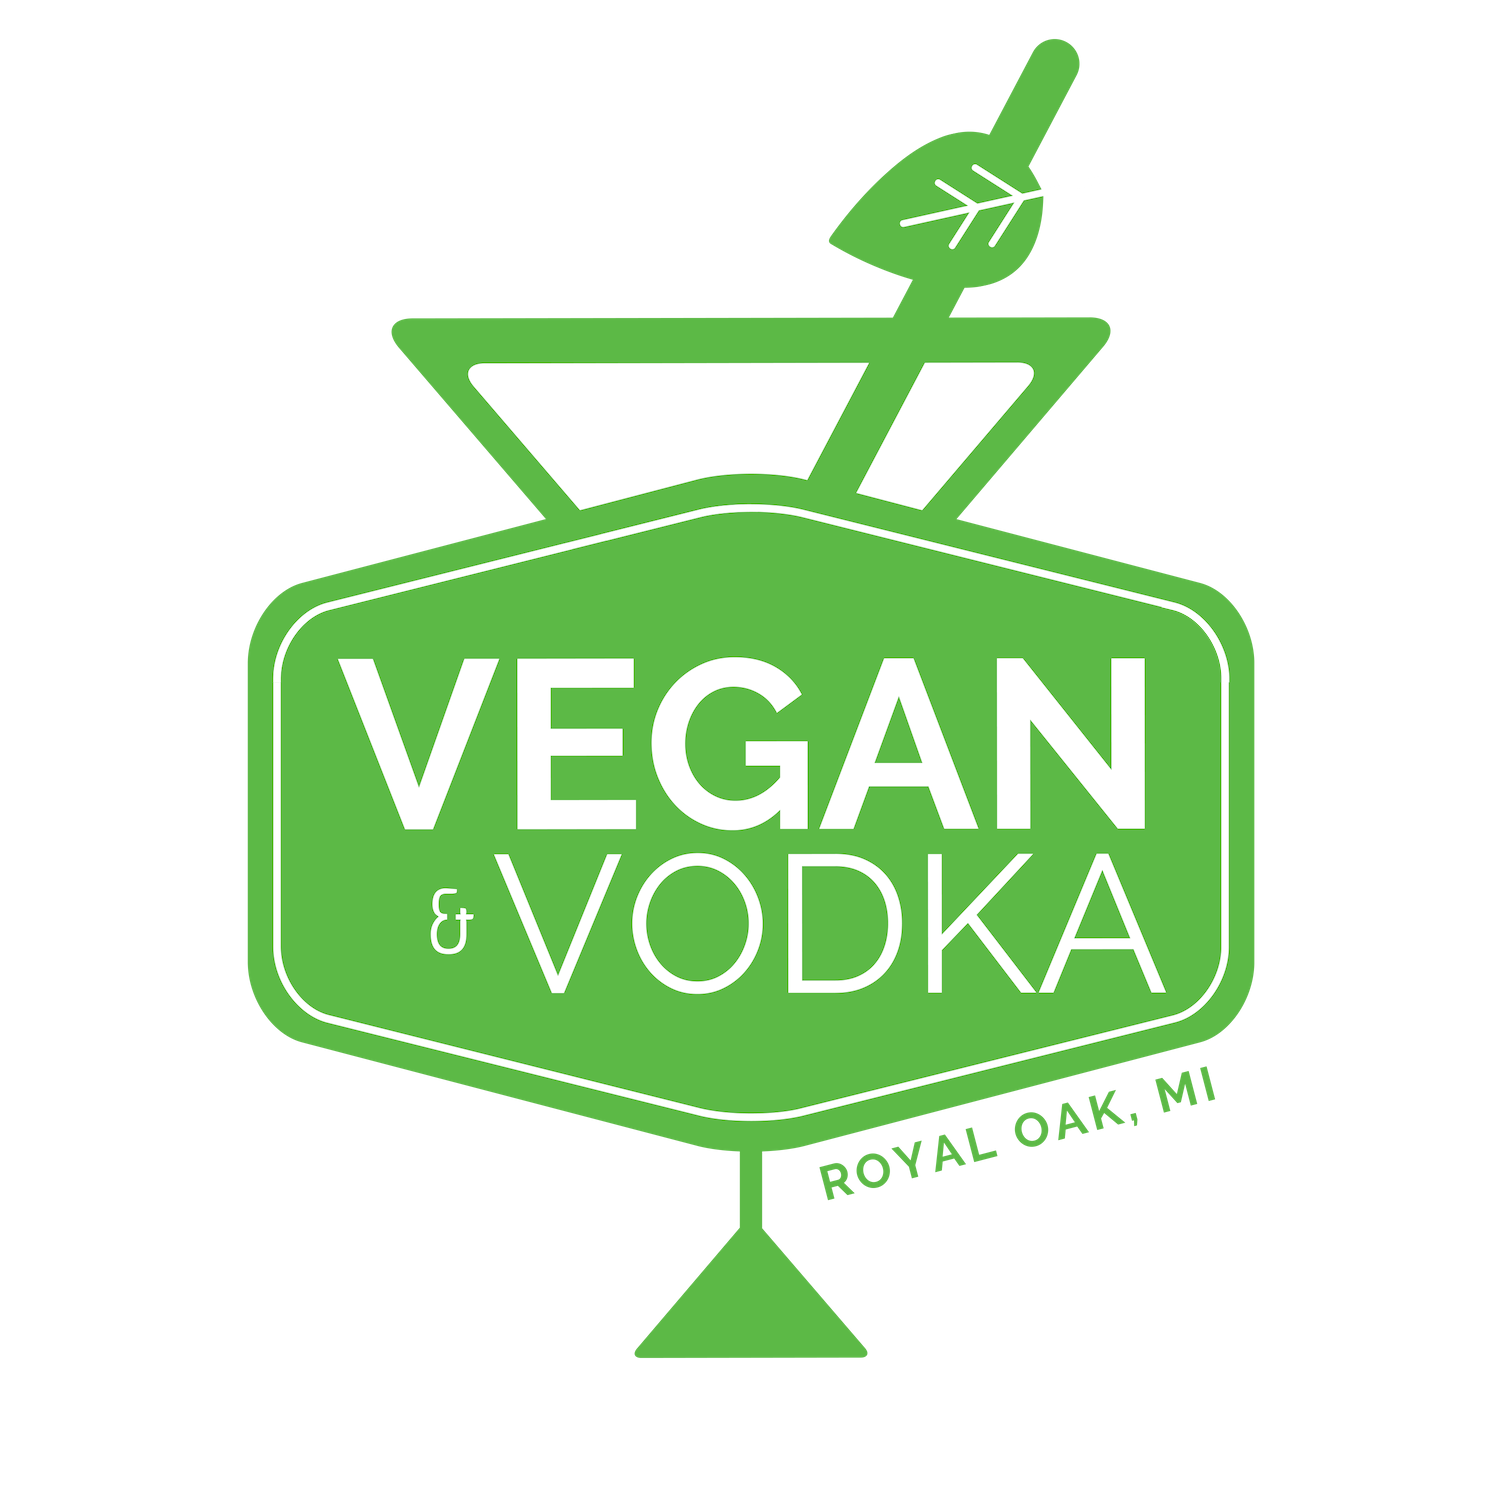 Vegan & Vodka